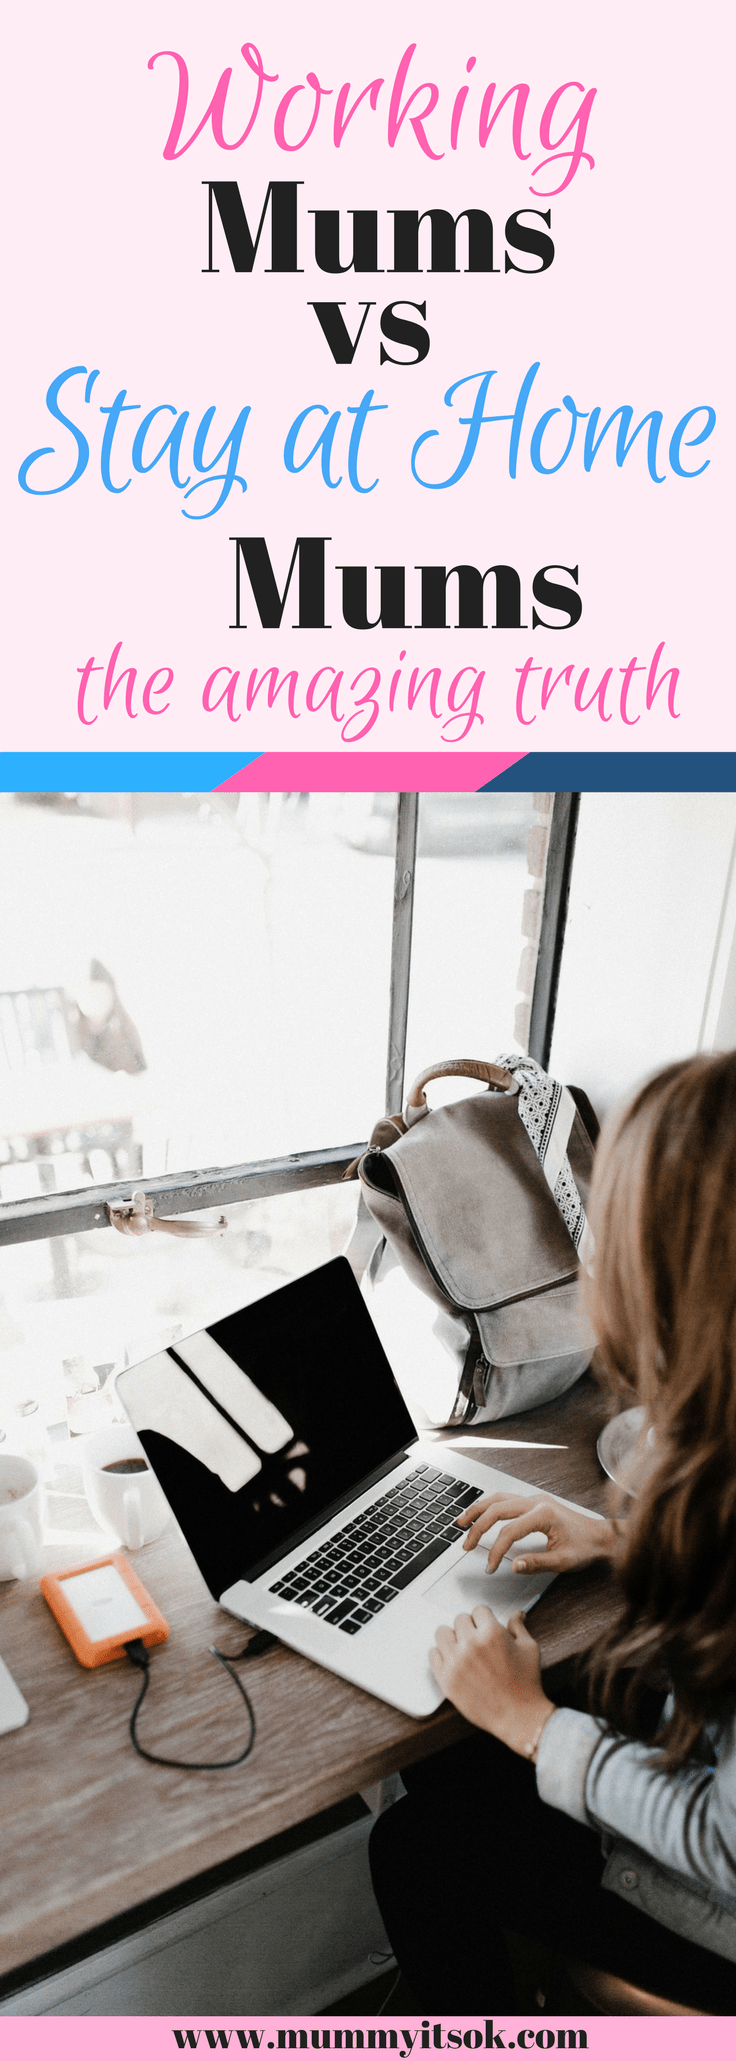 Working Mums vs Stay At Home Mums : The Amazing Truth | Working mums